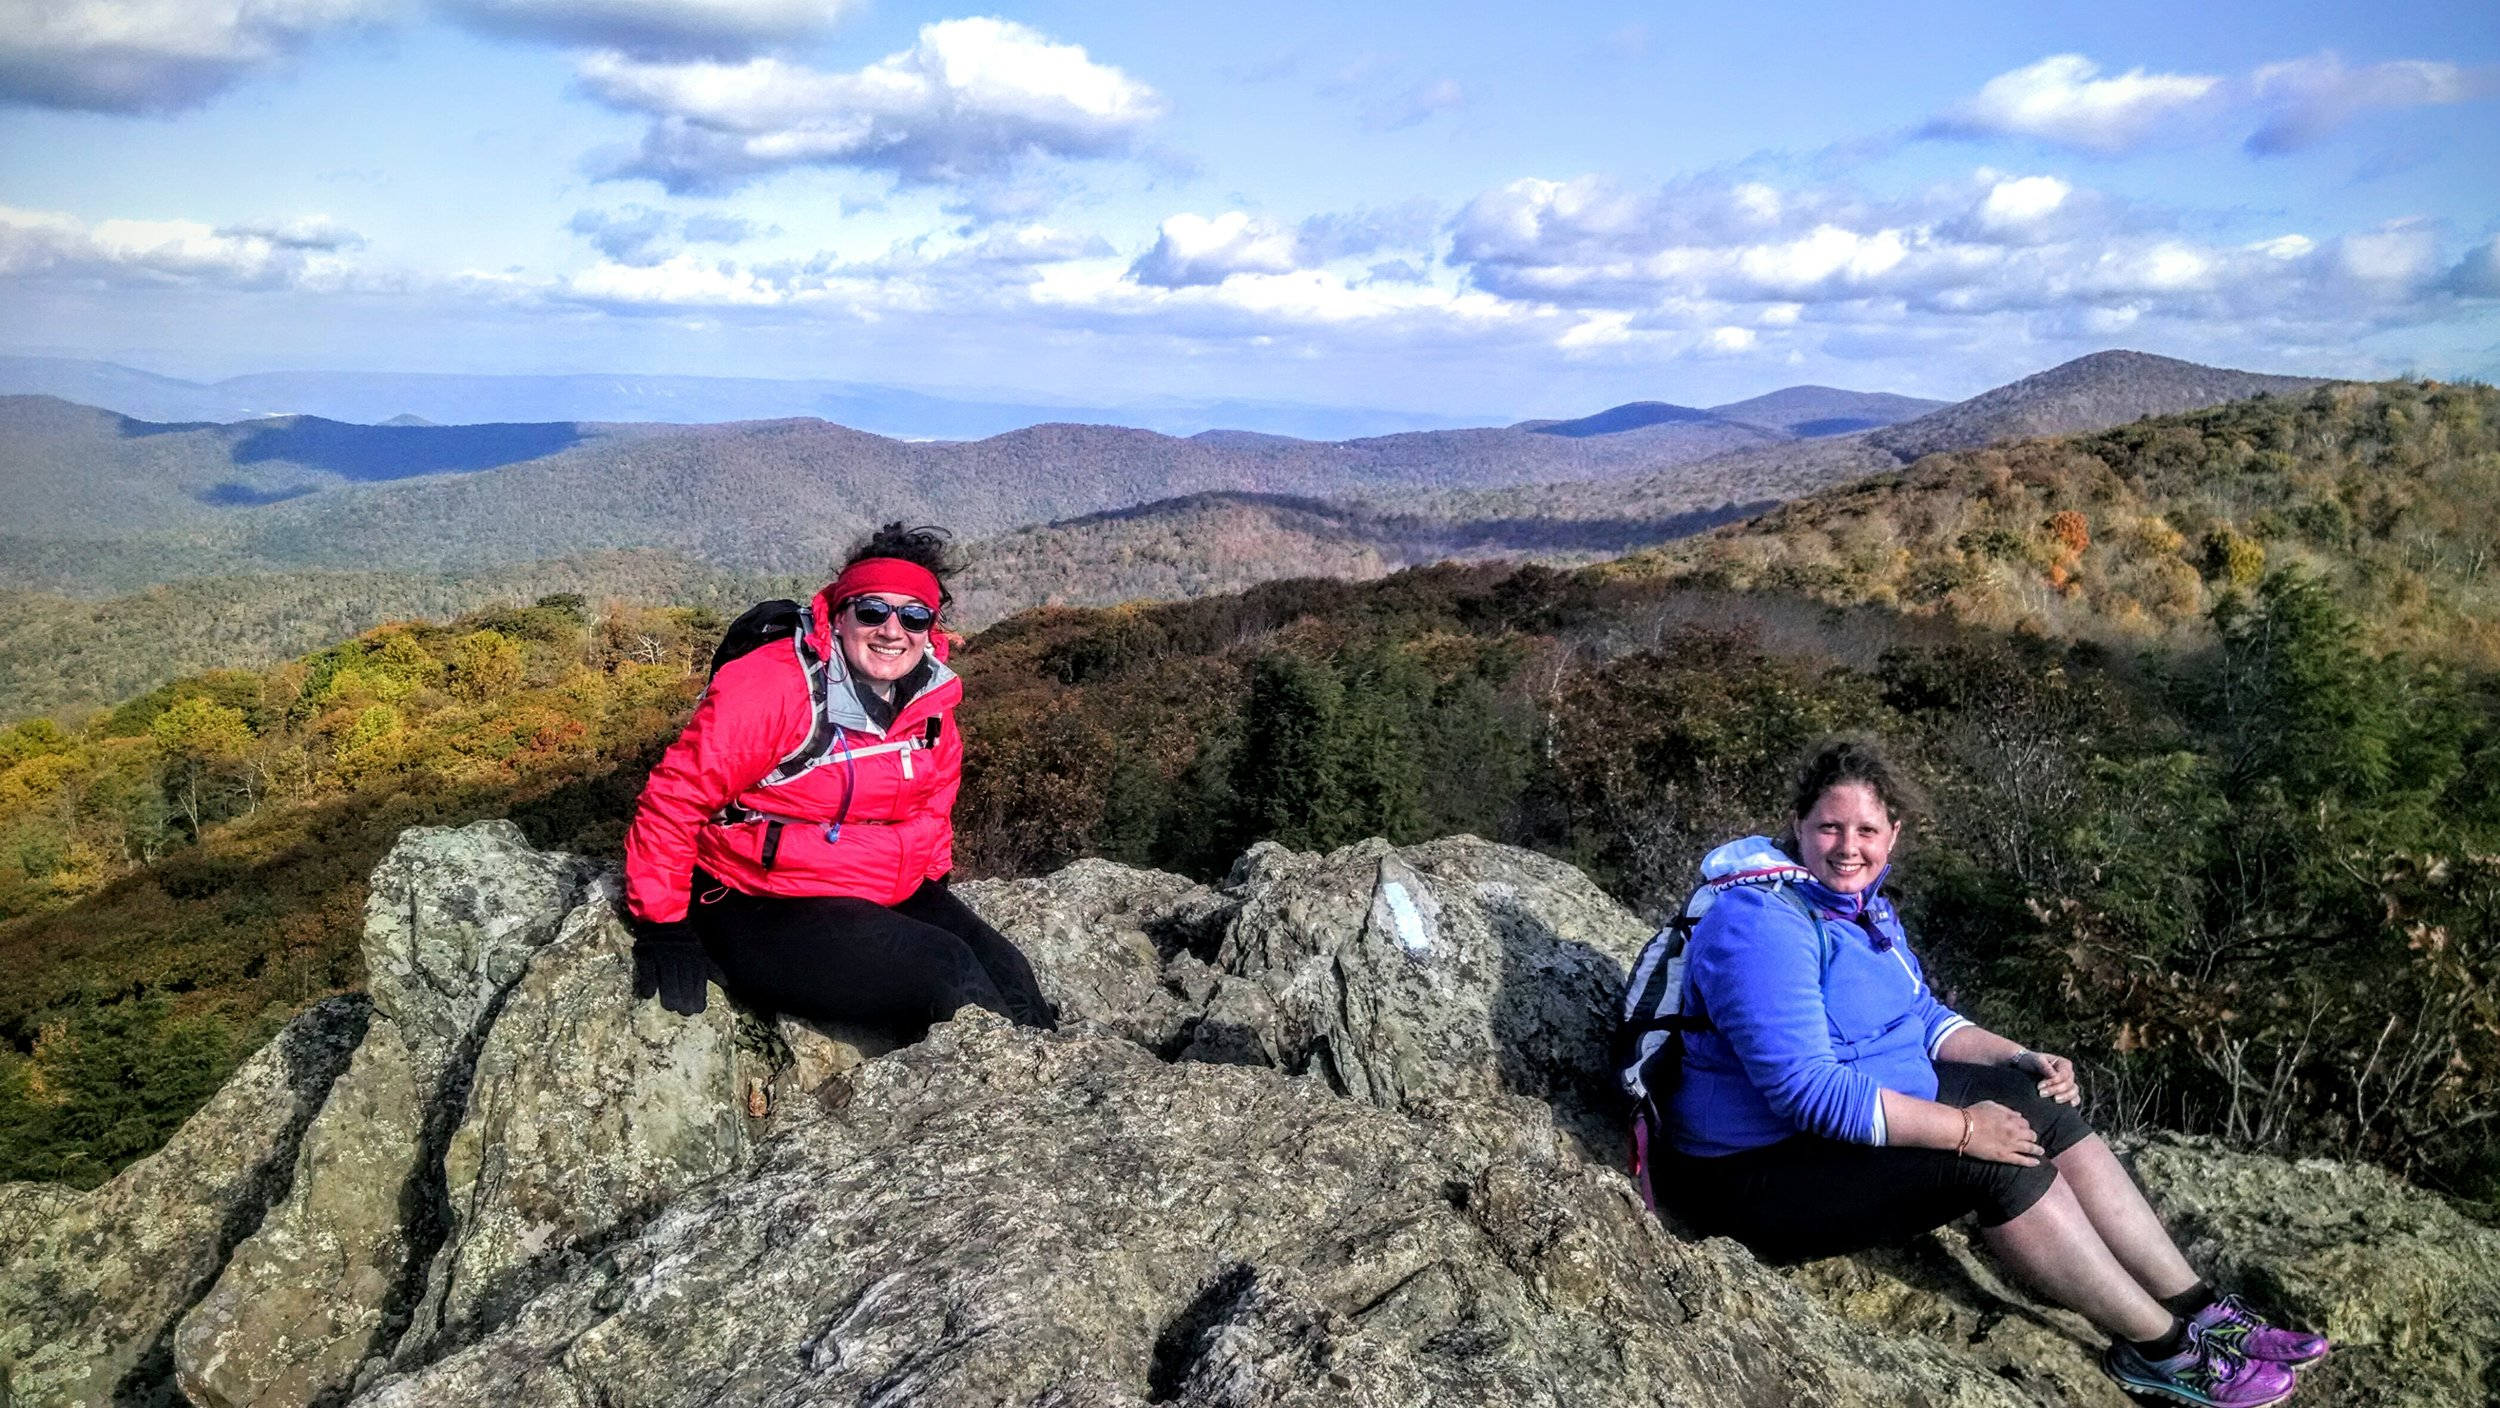 360 degree view from the top of the Bearfence Rock Scramble hike in Shenandoah National Park